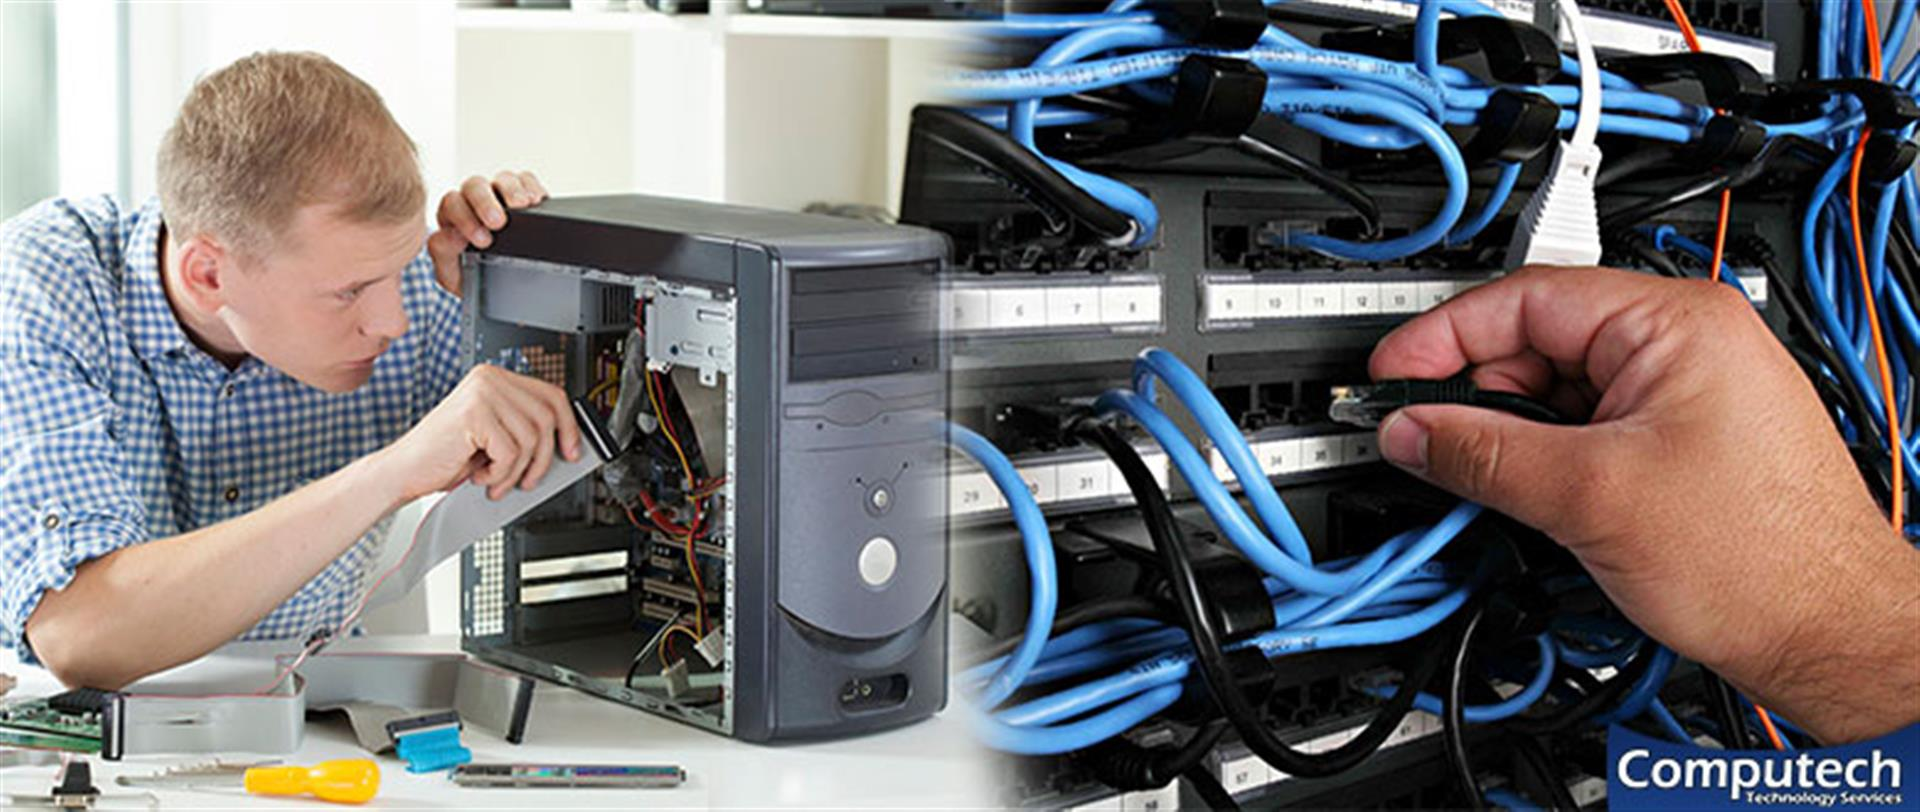 Quitman Georgia On Site PC & Printer Repairs, Networking, Voice & Data Cabling Solutions